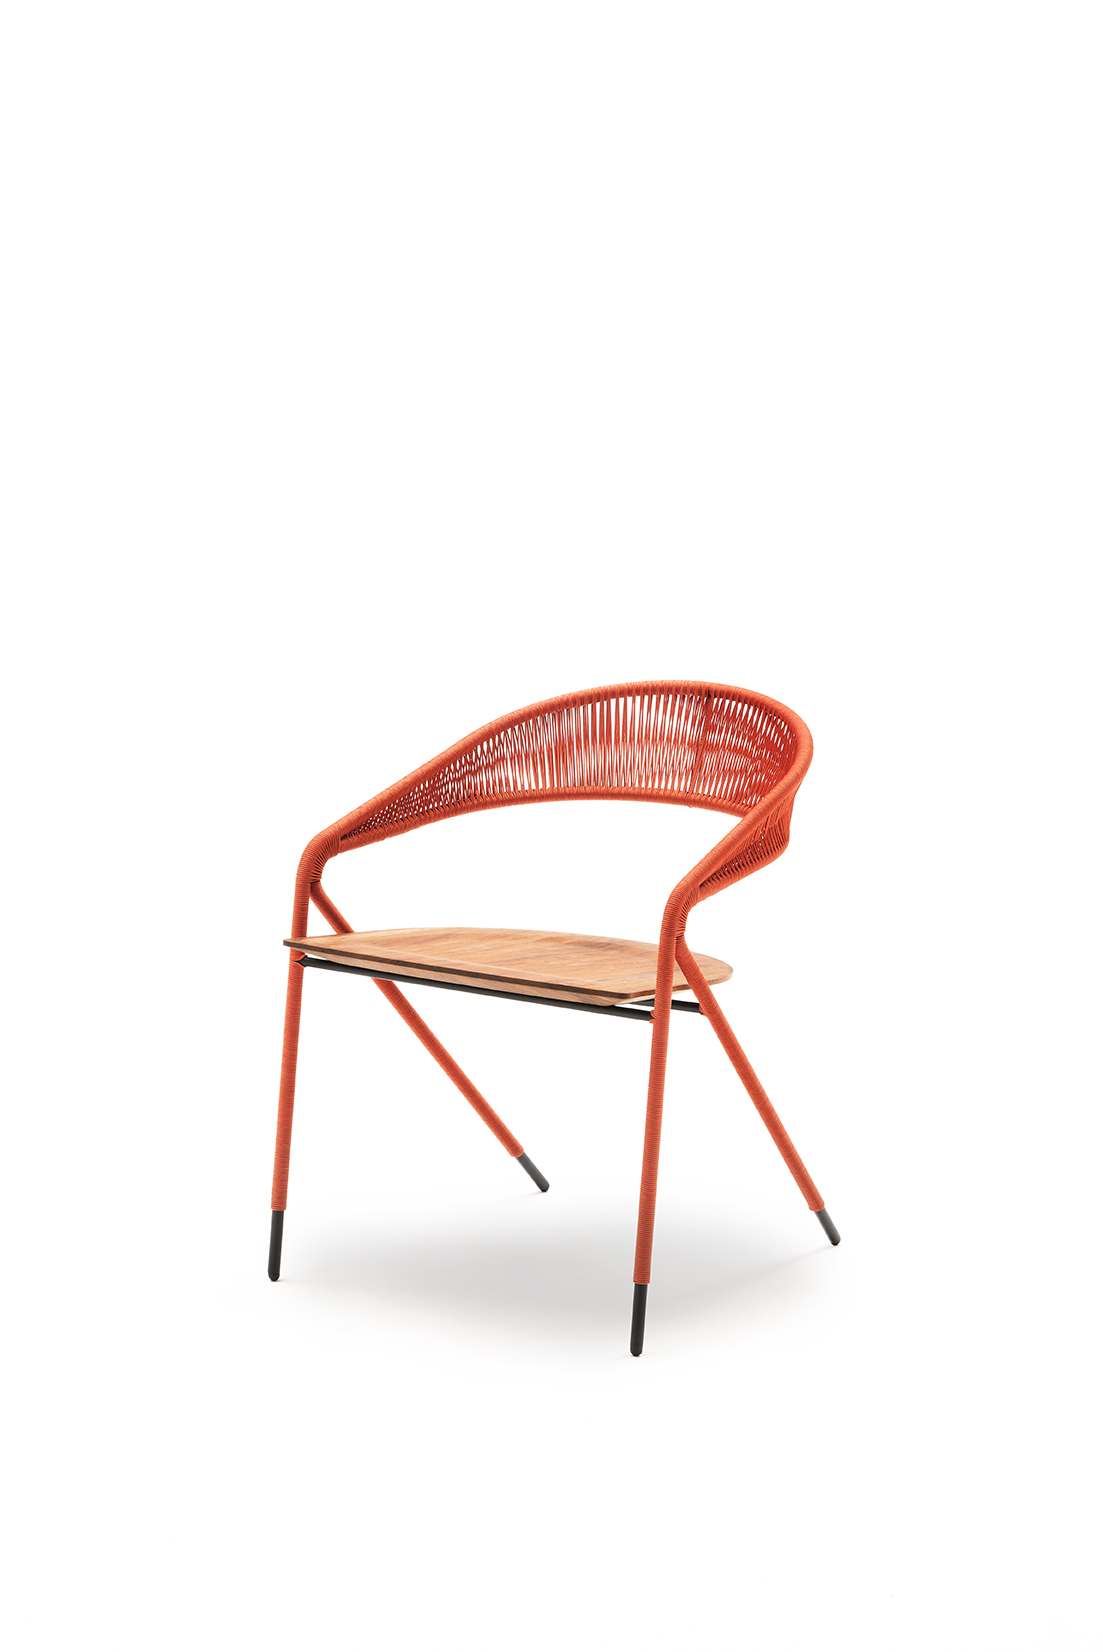 George's Rope Chair by Living Divani